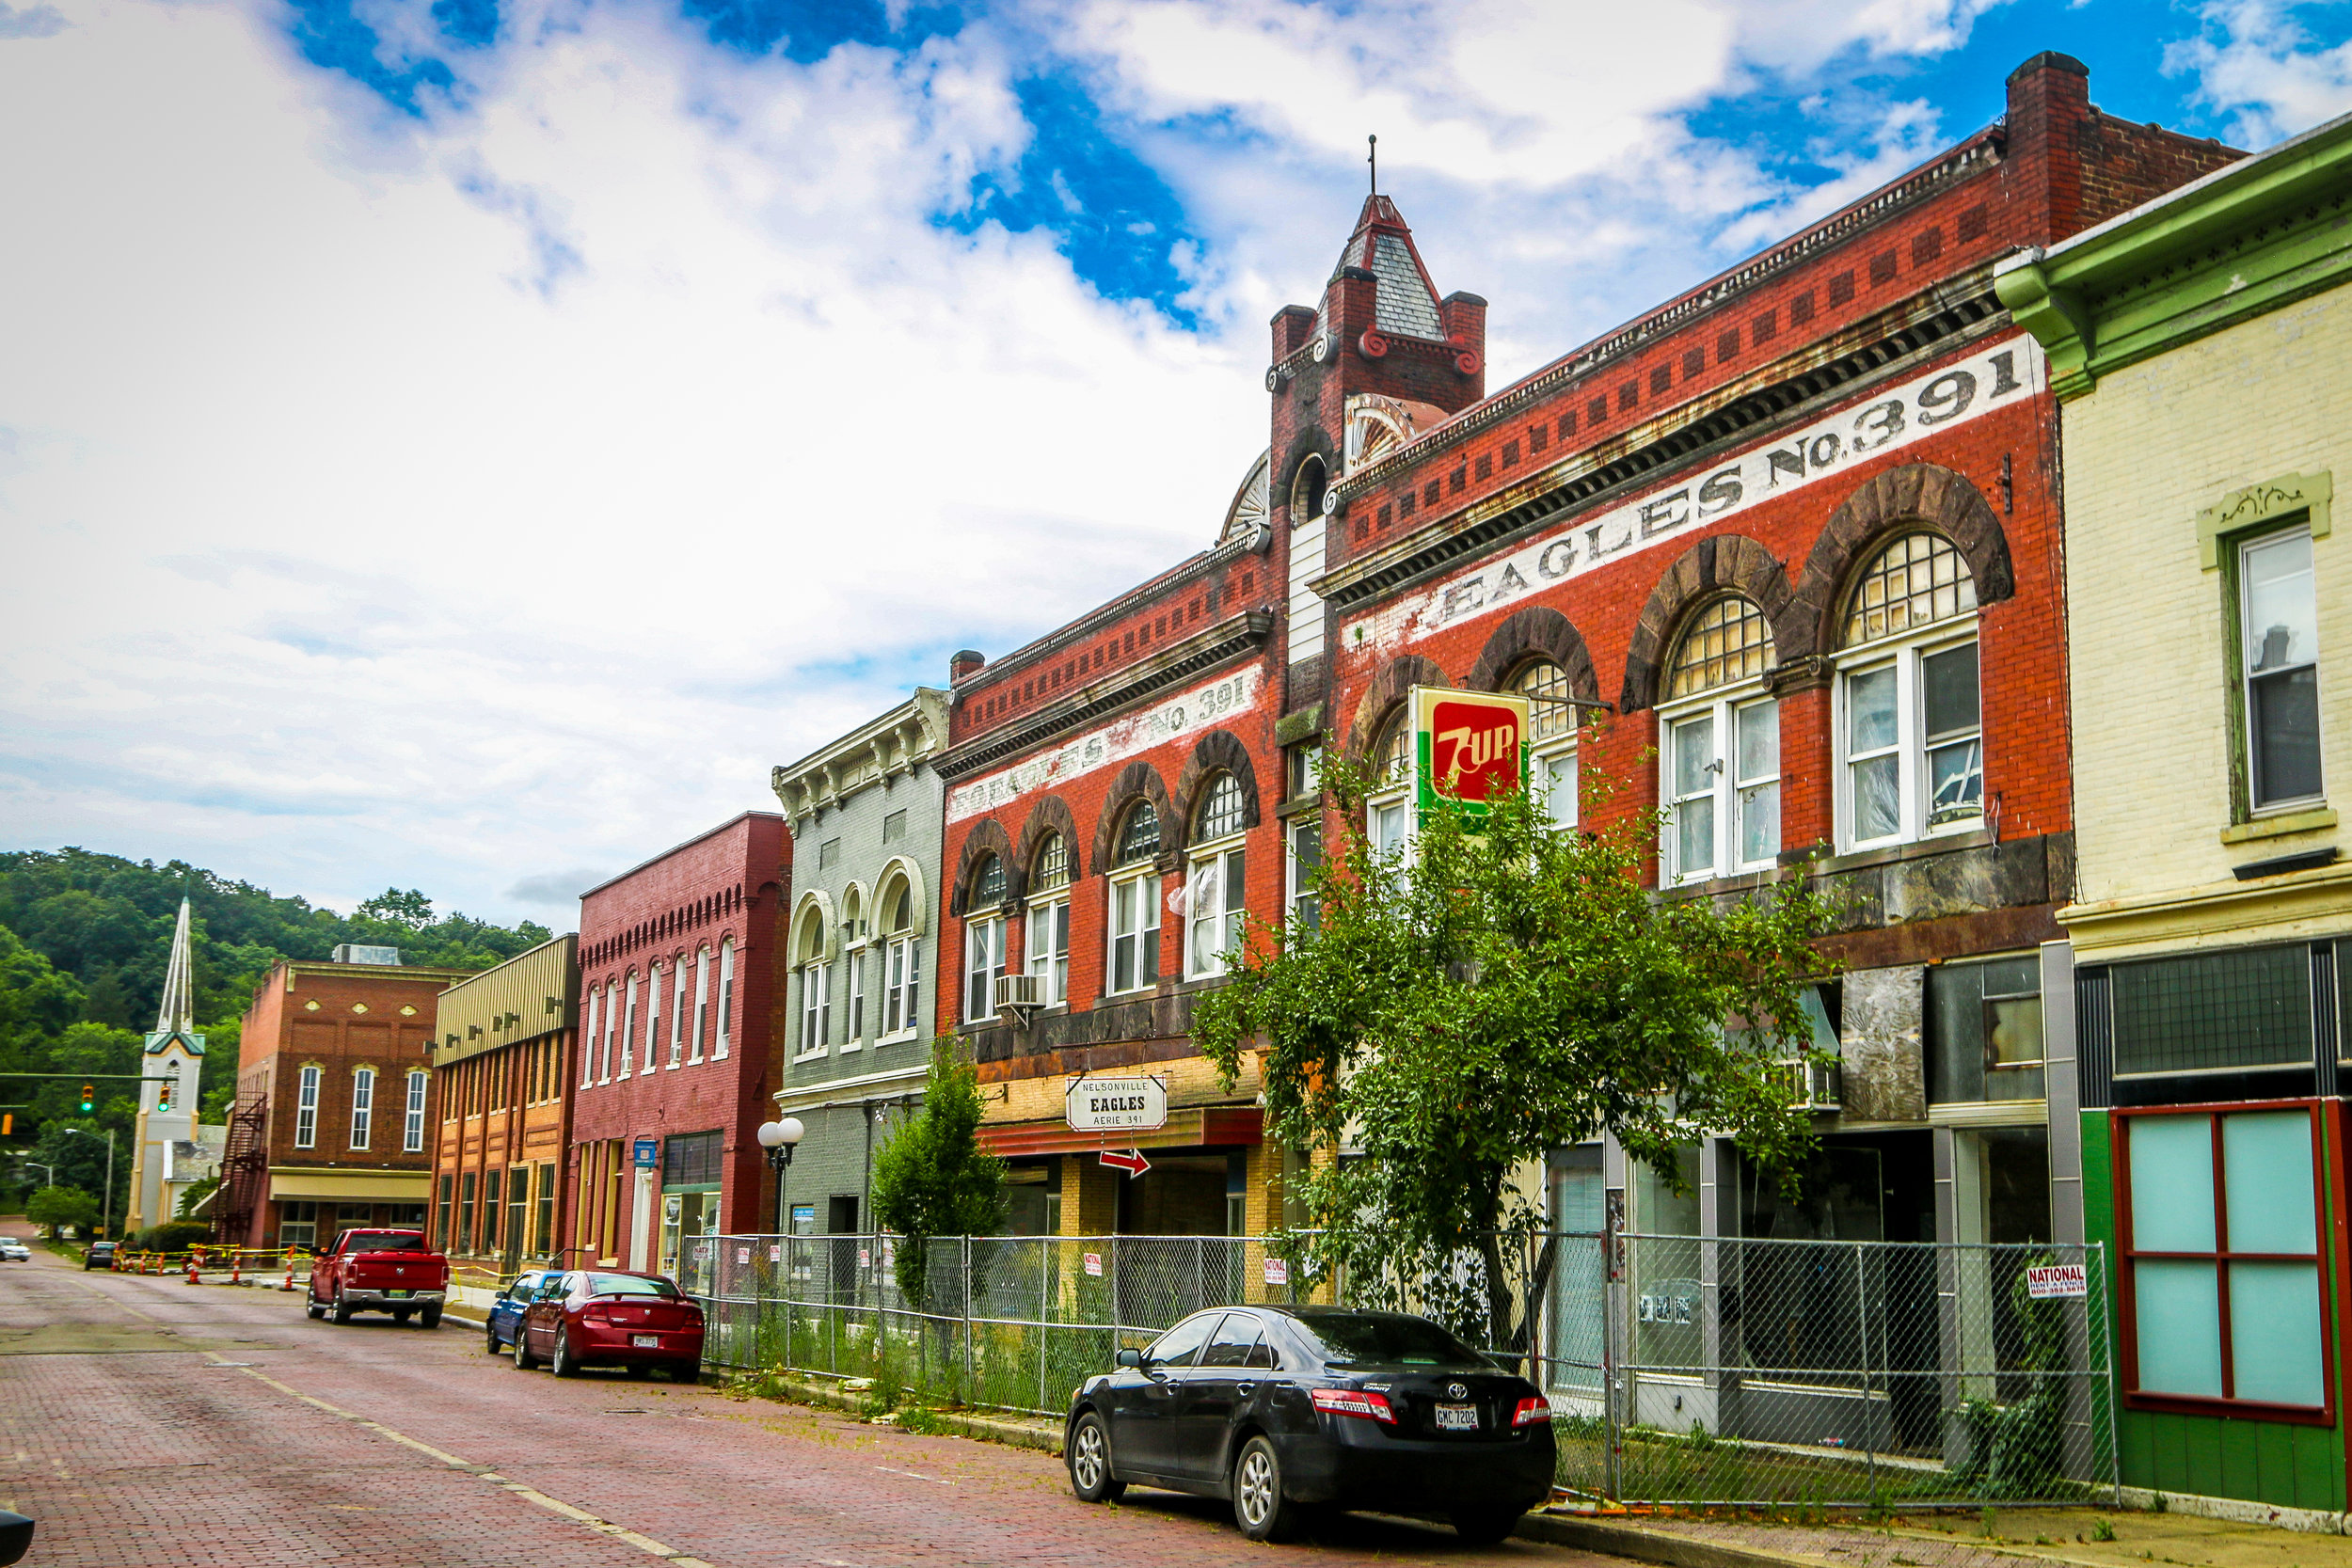 Downtown Nelsonville